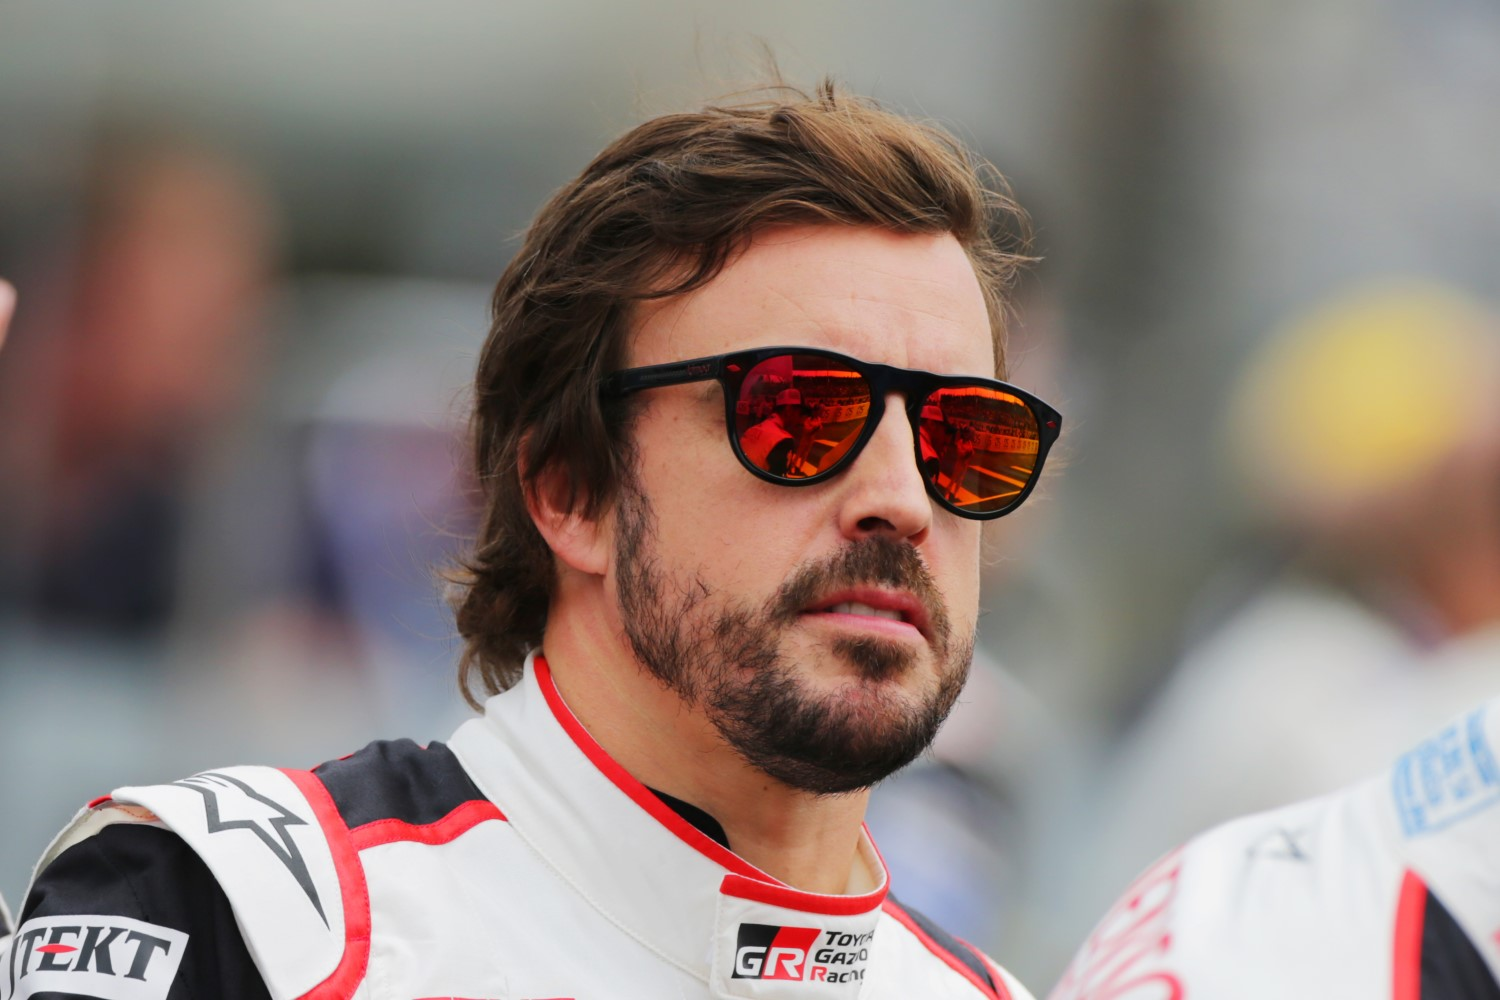 Alonso says no to Supercars